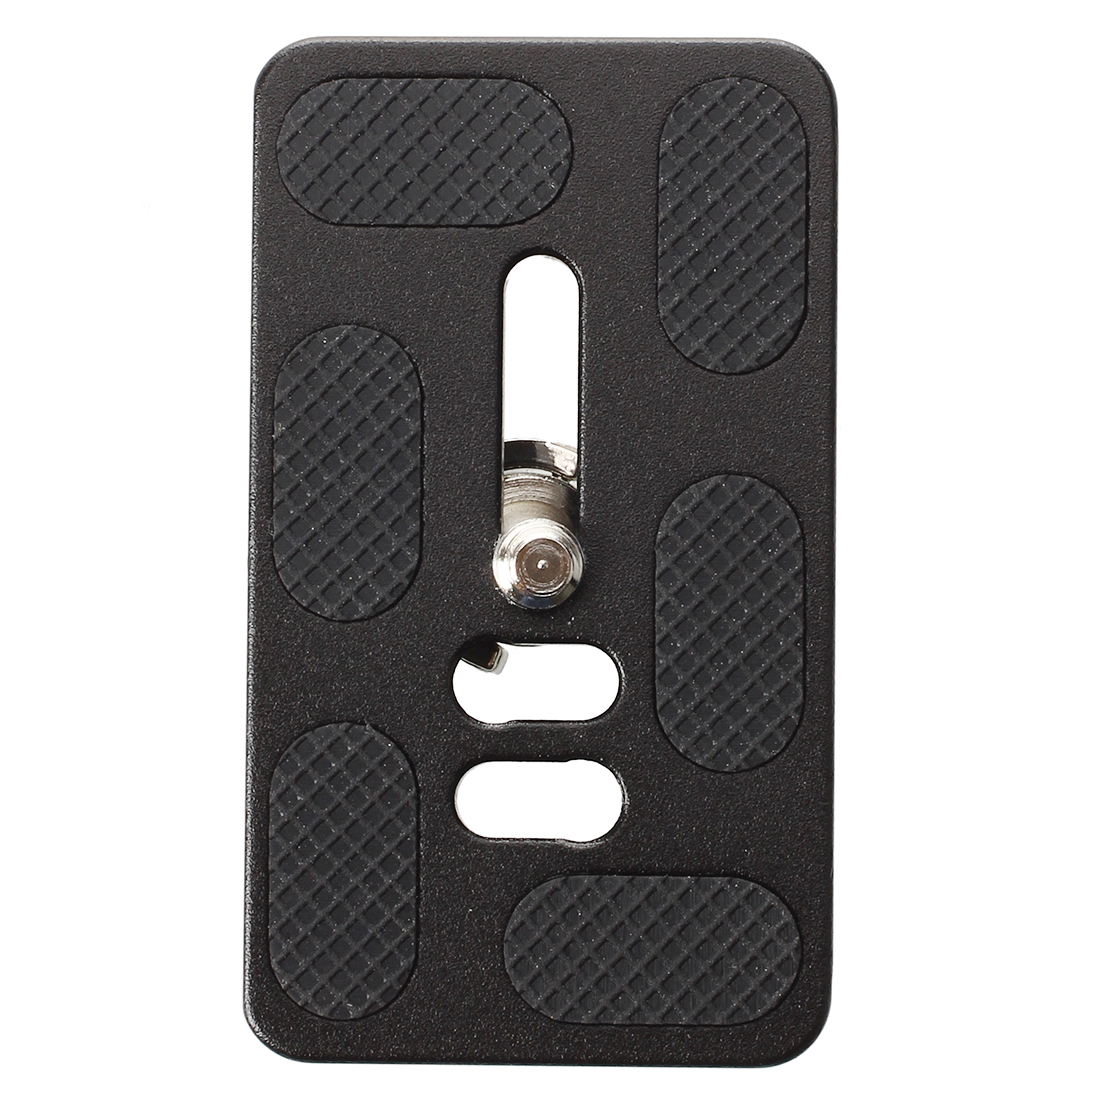 PU - 70 Universal Quick Release Plate Bracket 1/ 4 Screw for Benro Arca QR (black)